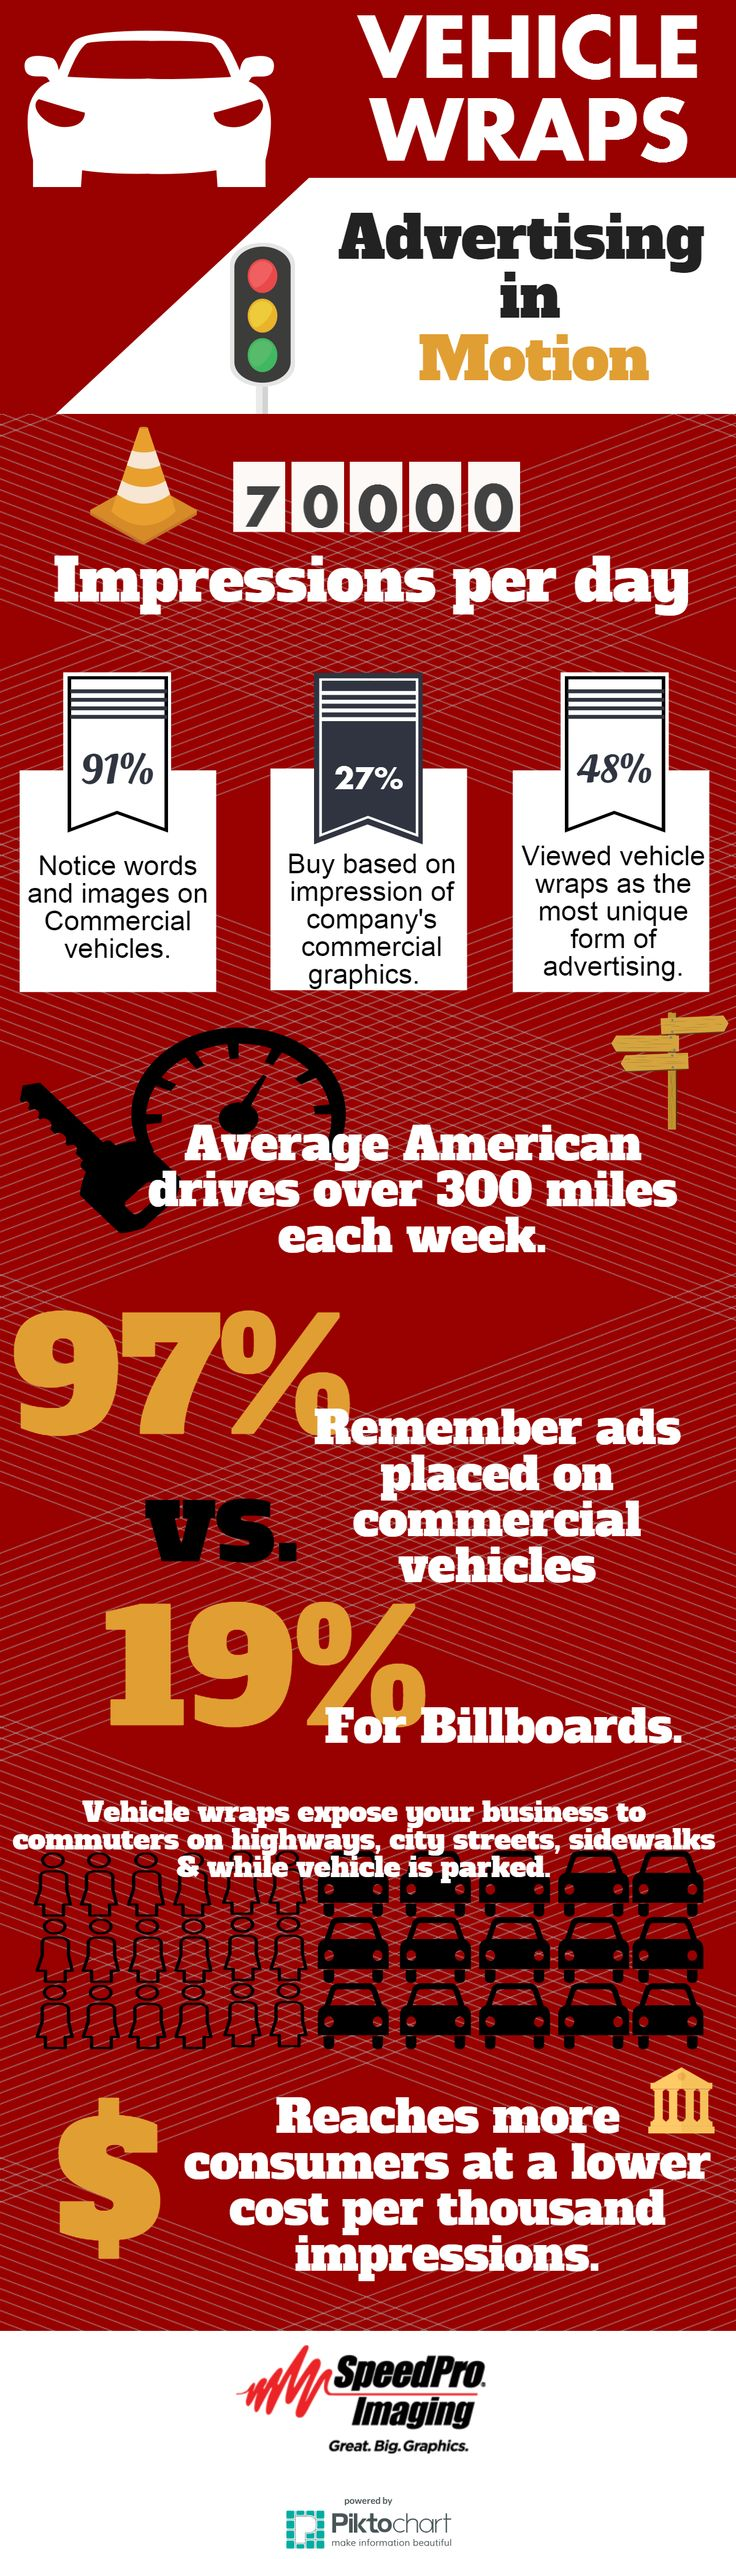 48% of people viewed vehicle wraps as the most unique form of advertising- Speedpro Imaging Irving #Advertising #vehiclewraps #marketing #branding #infograph